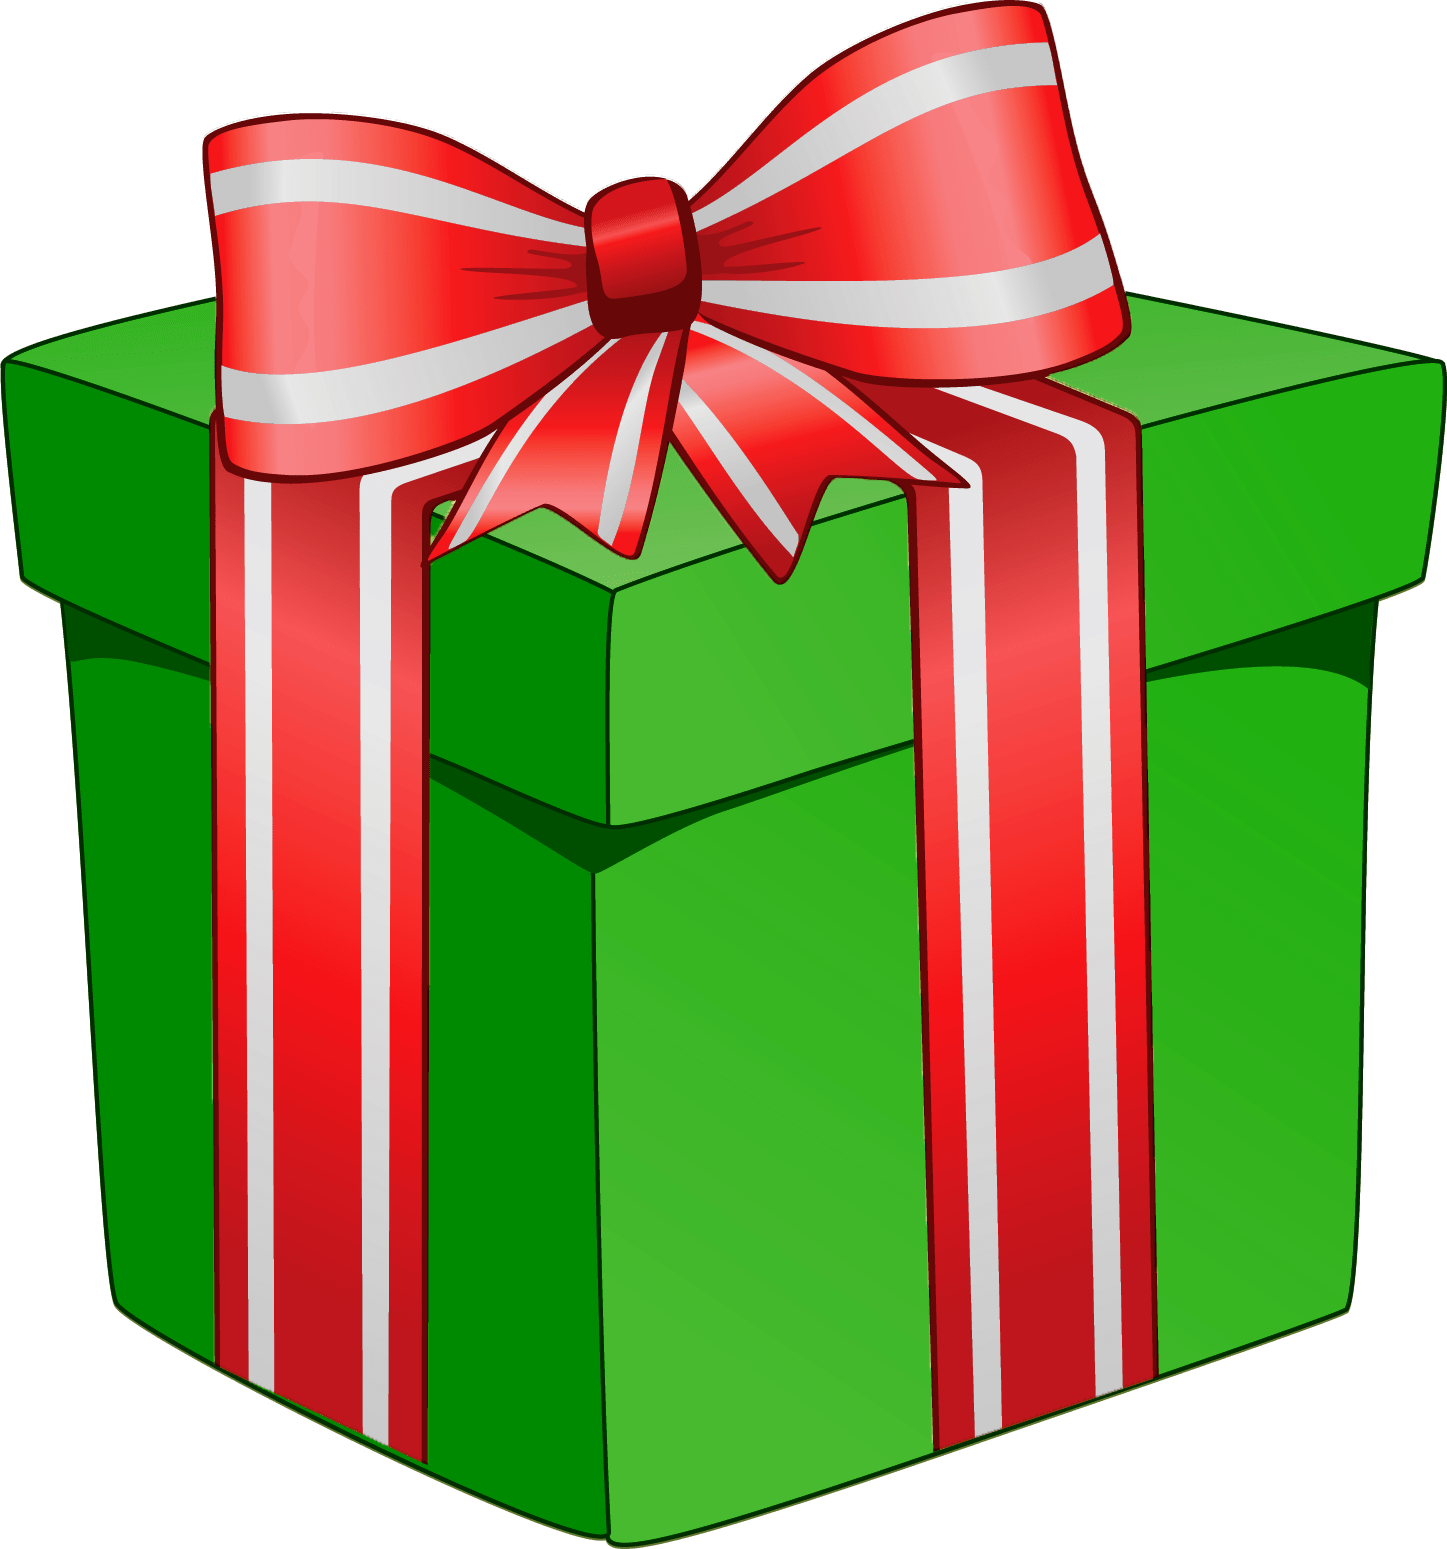 Christmas gifts clipart picture black and white download Christmas Gifts Clipart – Merry Christmas And Happy New Year 2018 picture black and white download